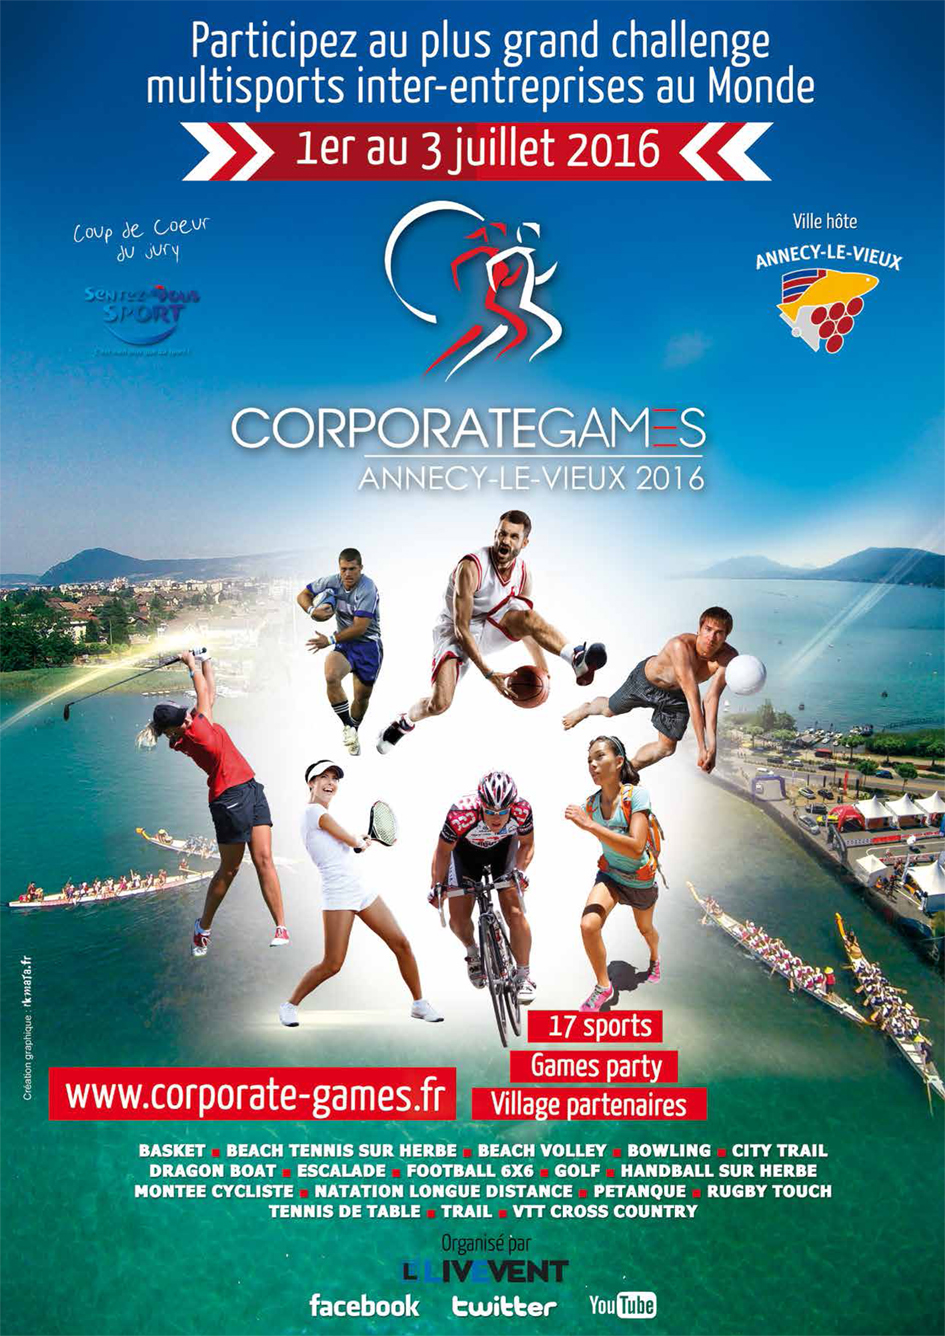 Corporate Games, sport for life !